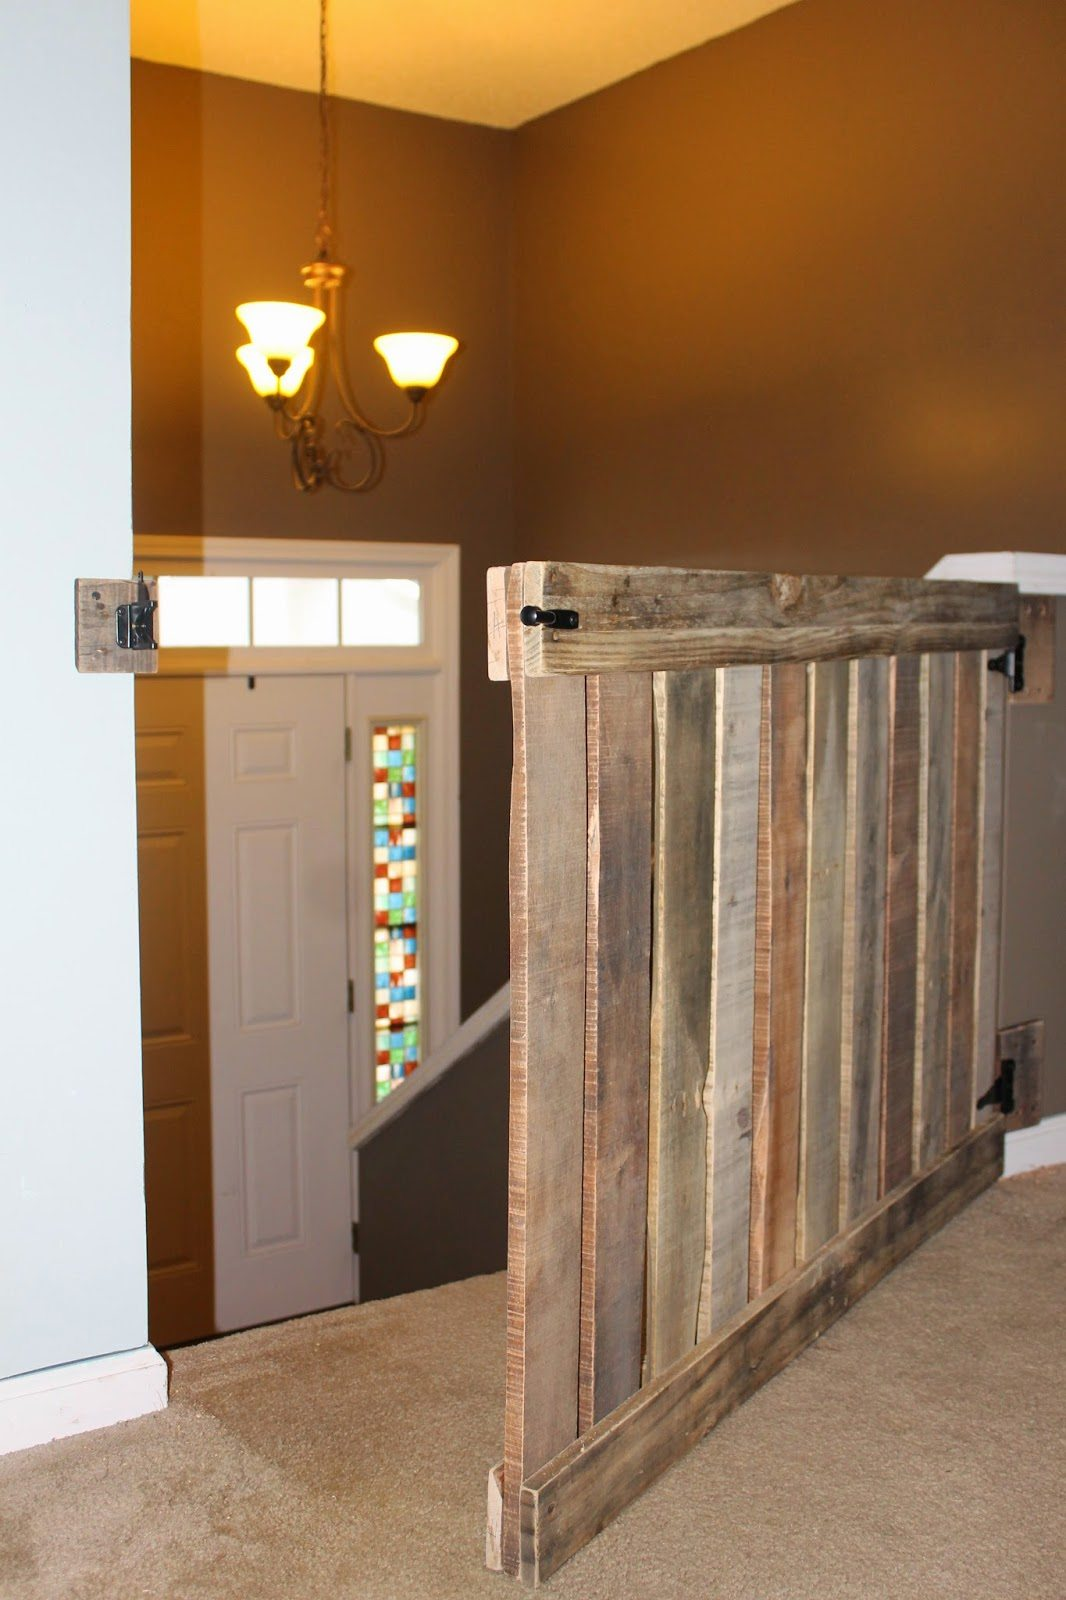 10 Of The Least Ugly Baby And Pet Gates Out There Simplemost